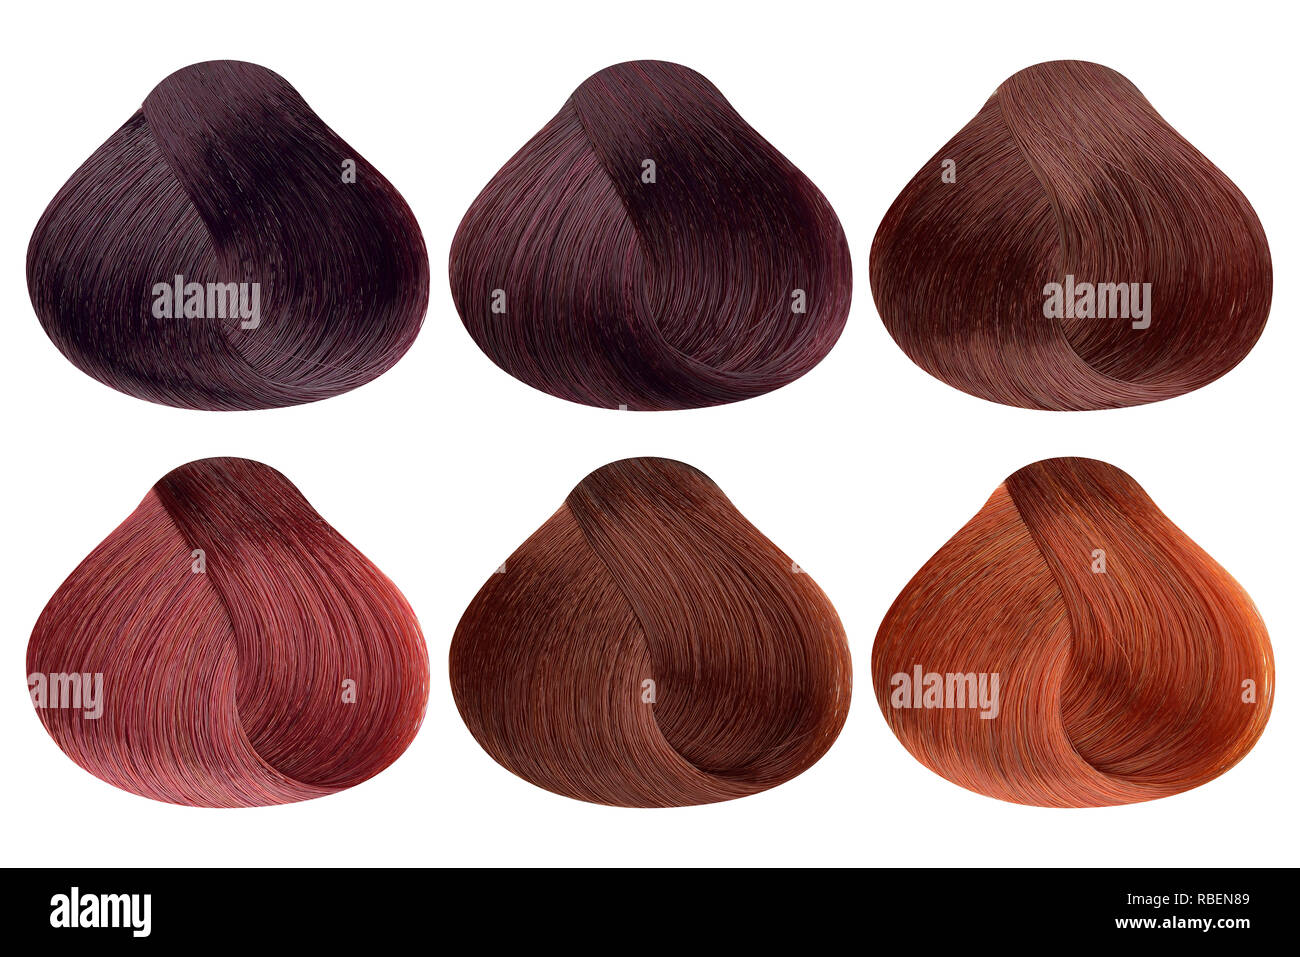 Set Of Locks Of Six Different Red Hair Color Samples